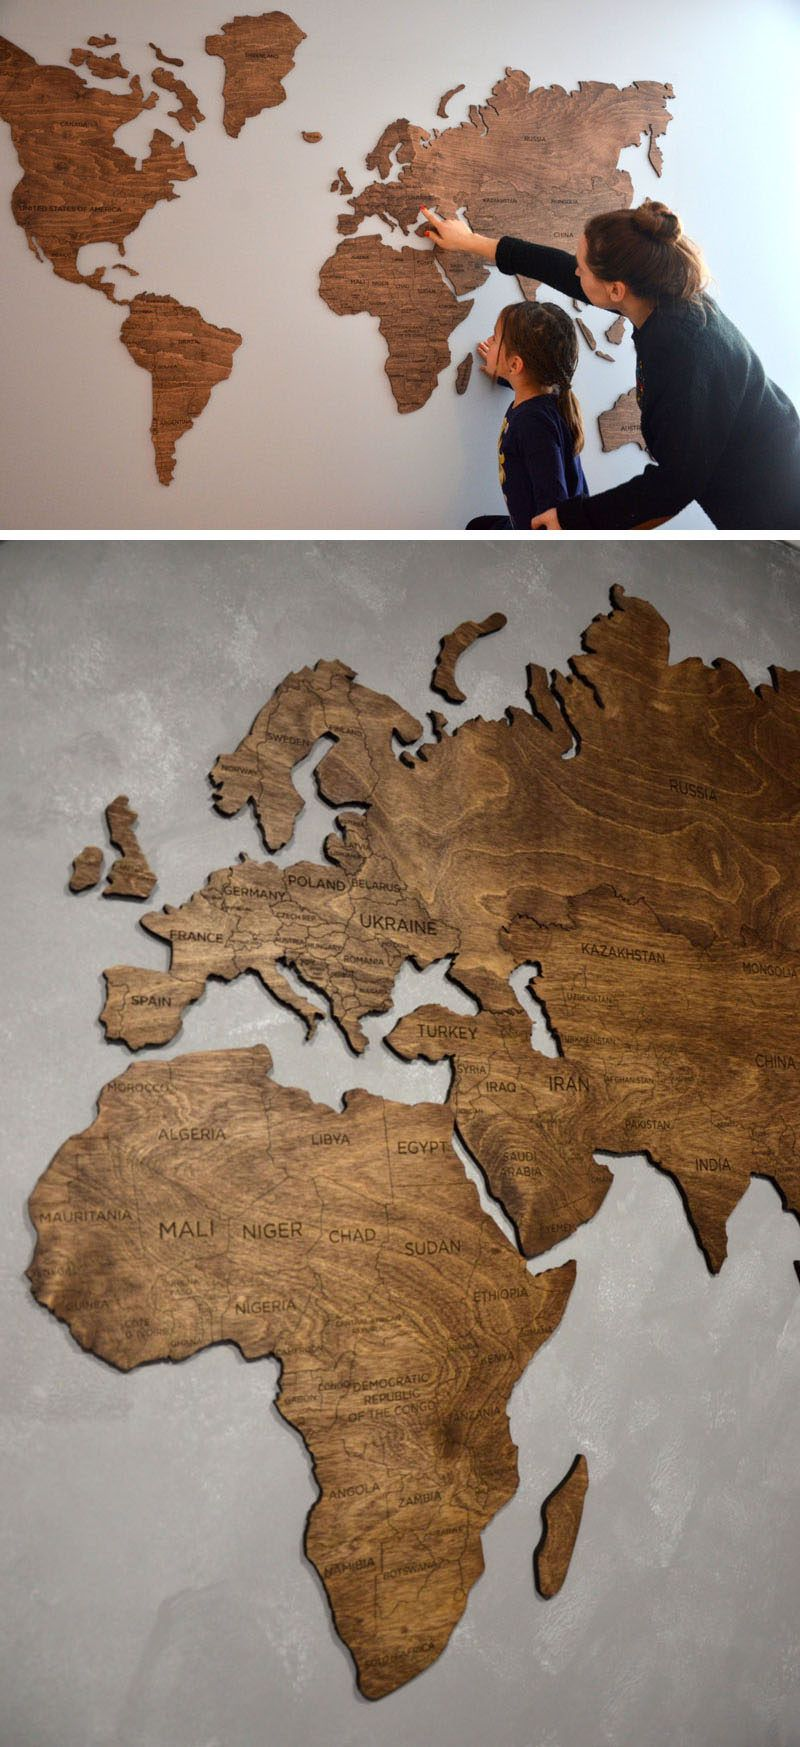 10 world map designs to decorate a plain wall raising woods and 10 world map designs to decorate a plain wall gumiabroncs Images